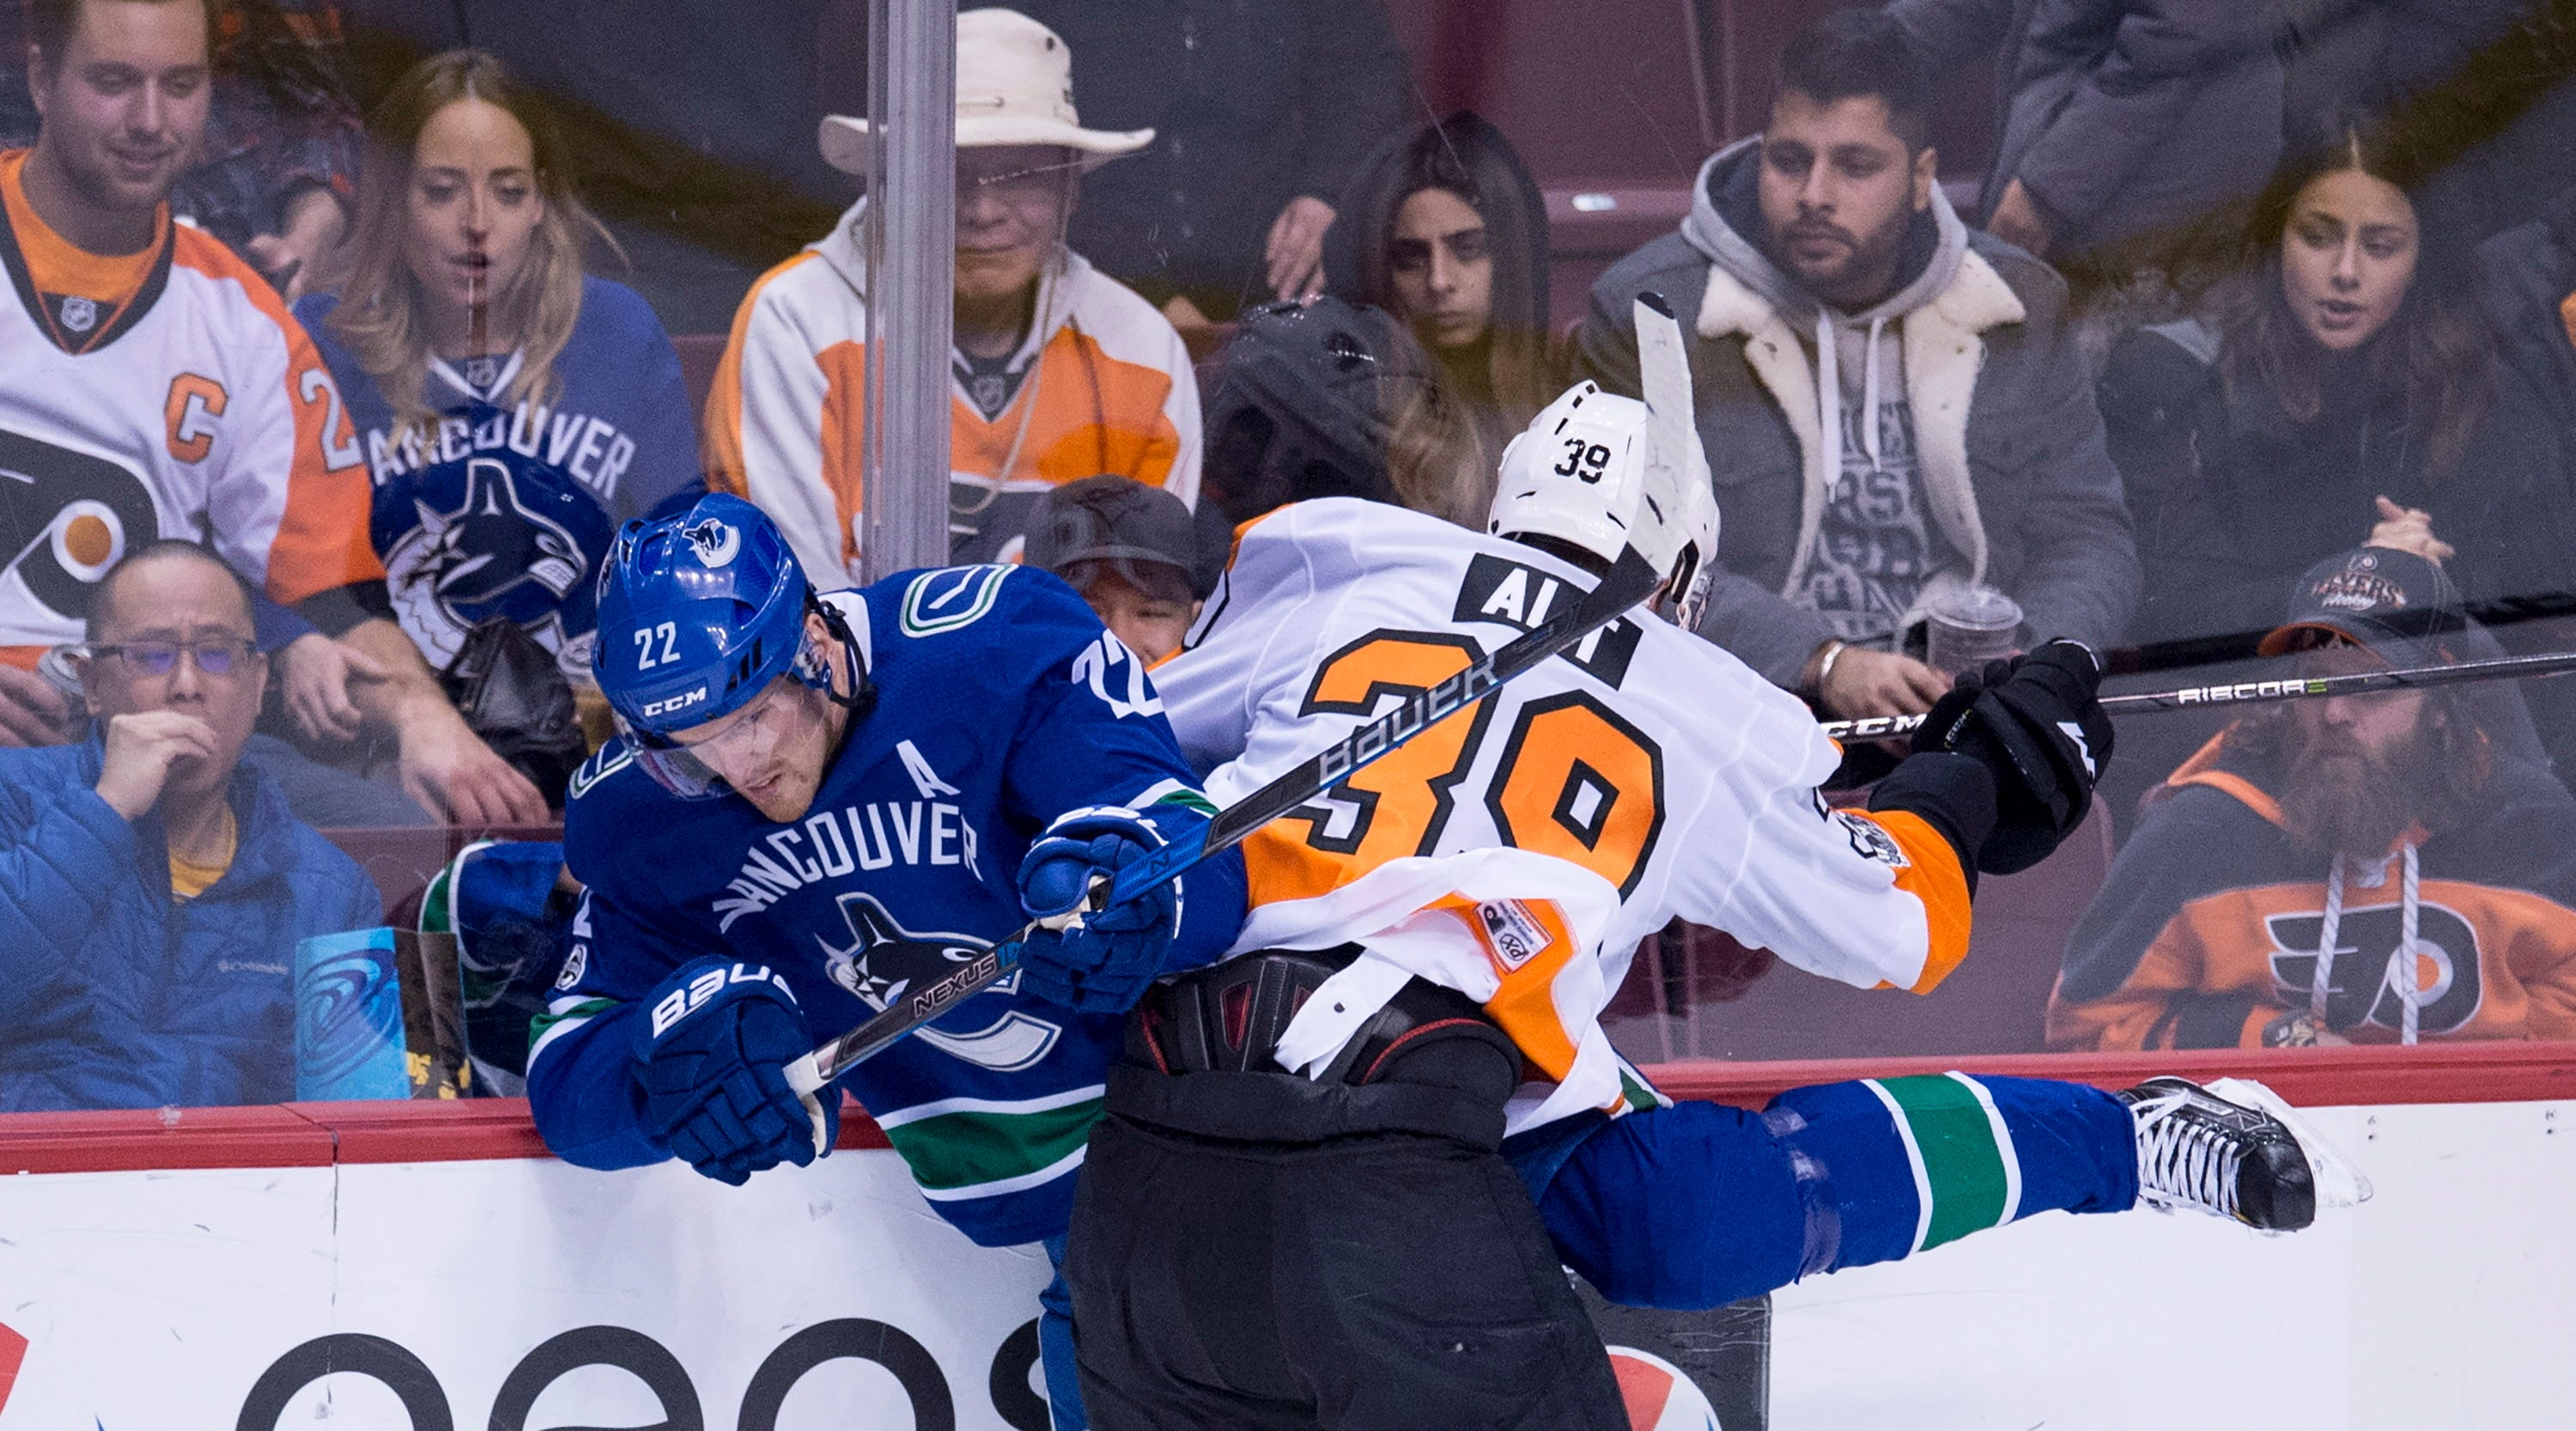 Flyers beat Canucks 4-1 for 3rd straight win